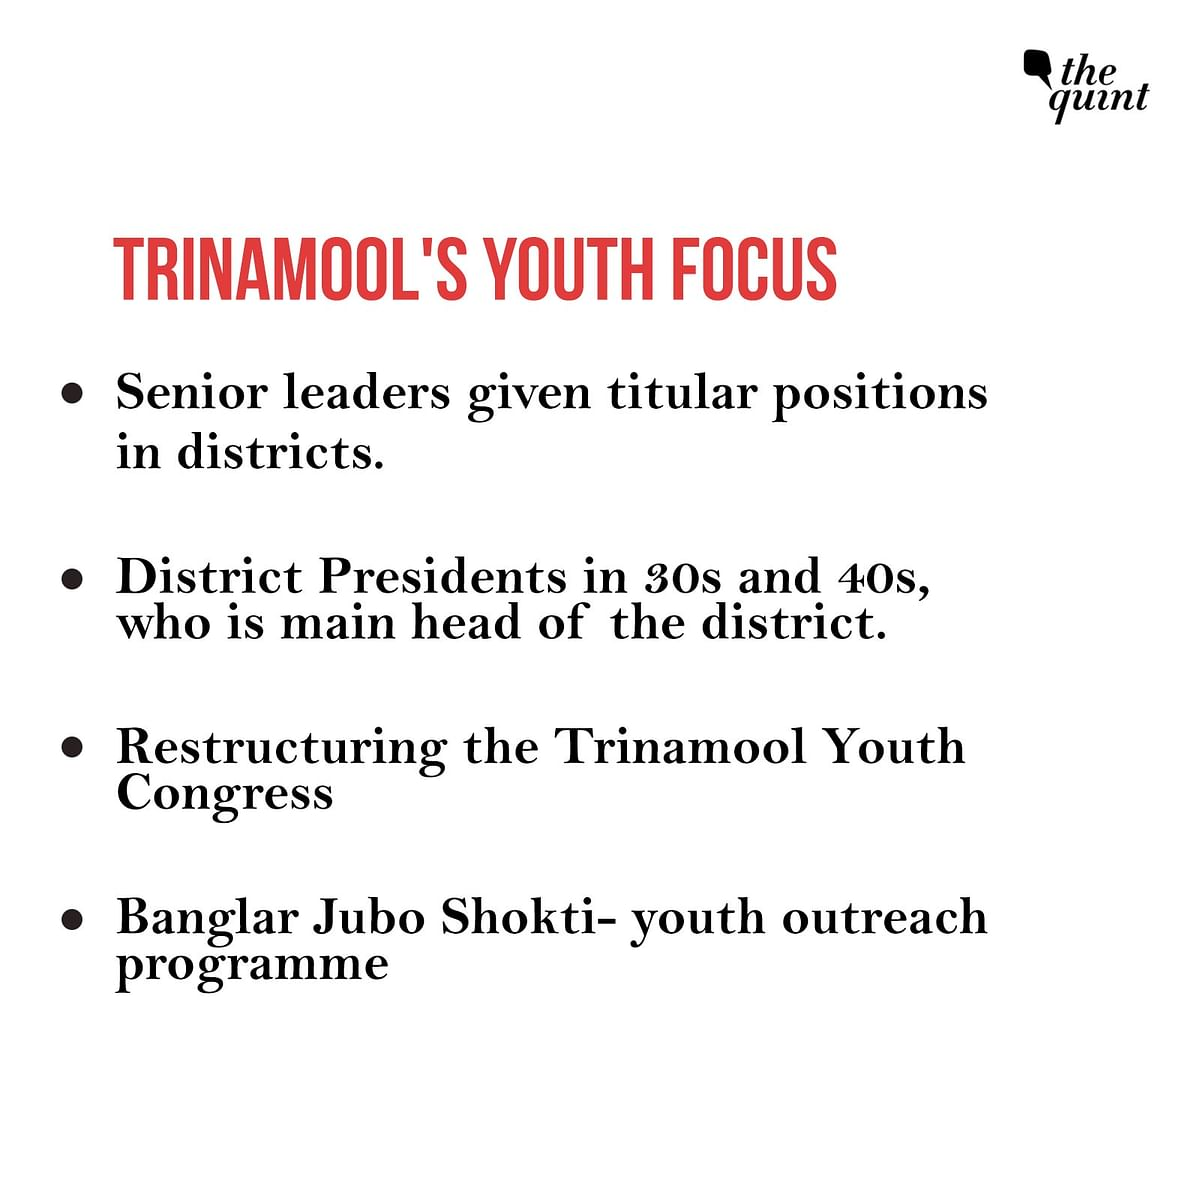 The Trinamool's youth focus.